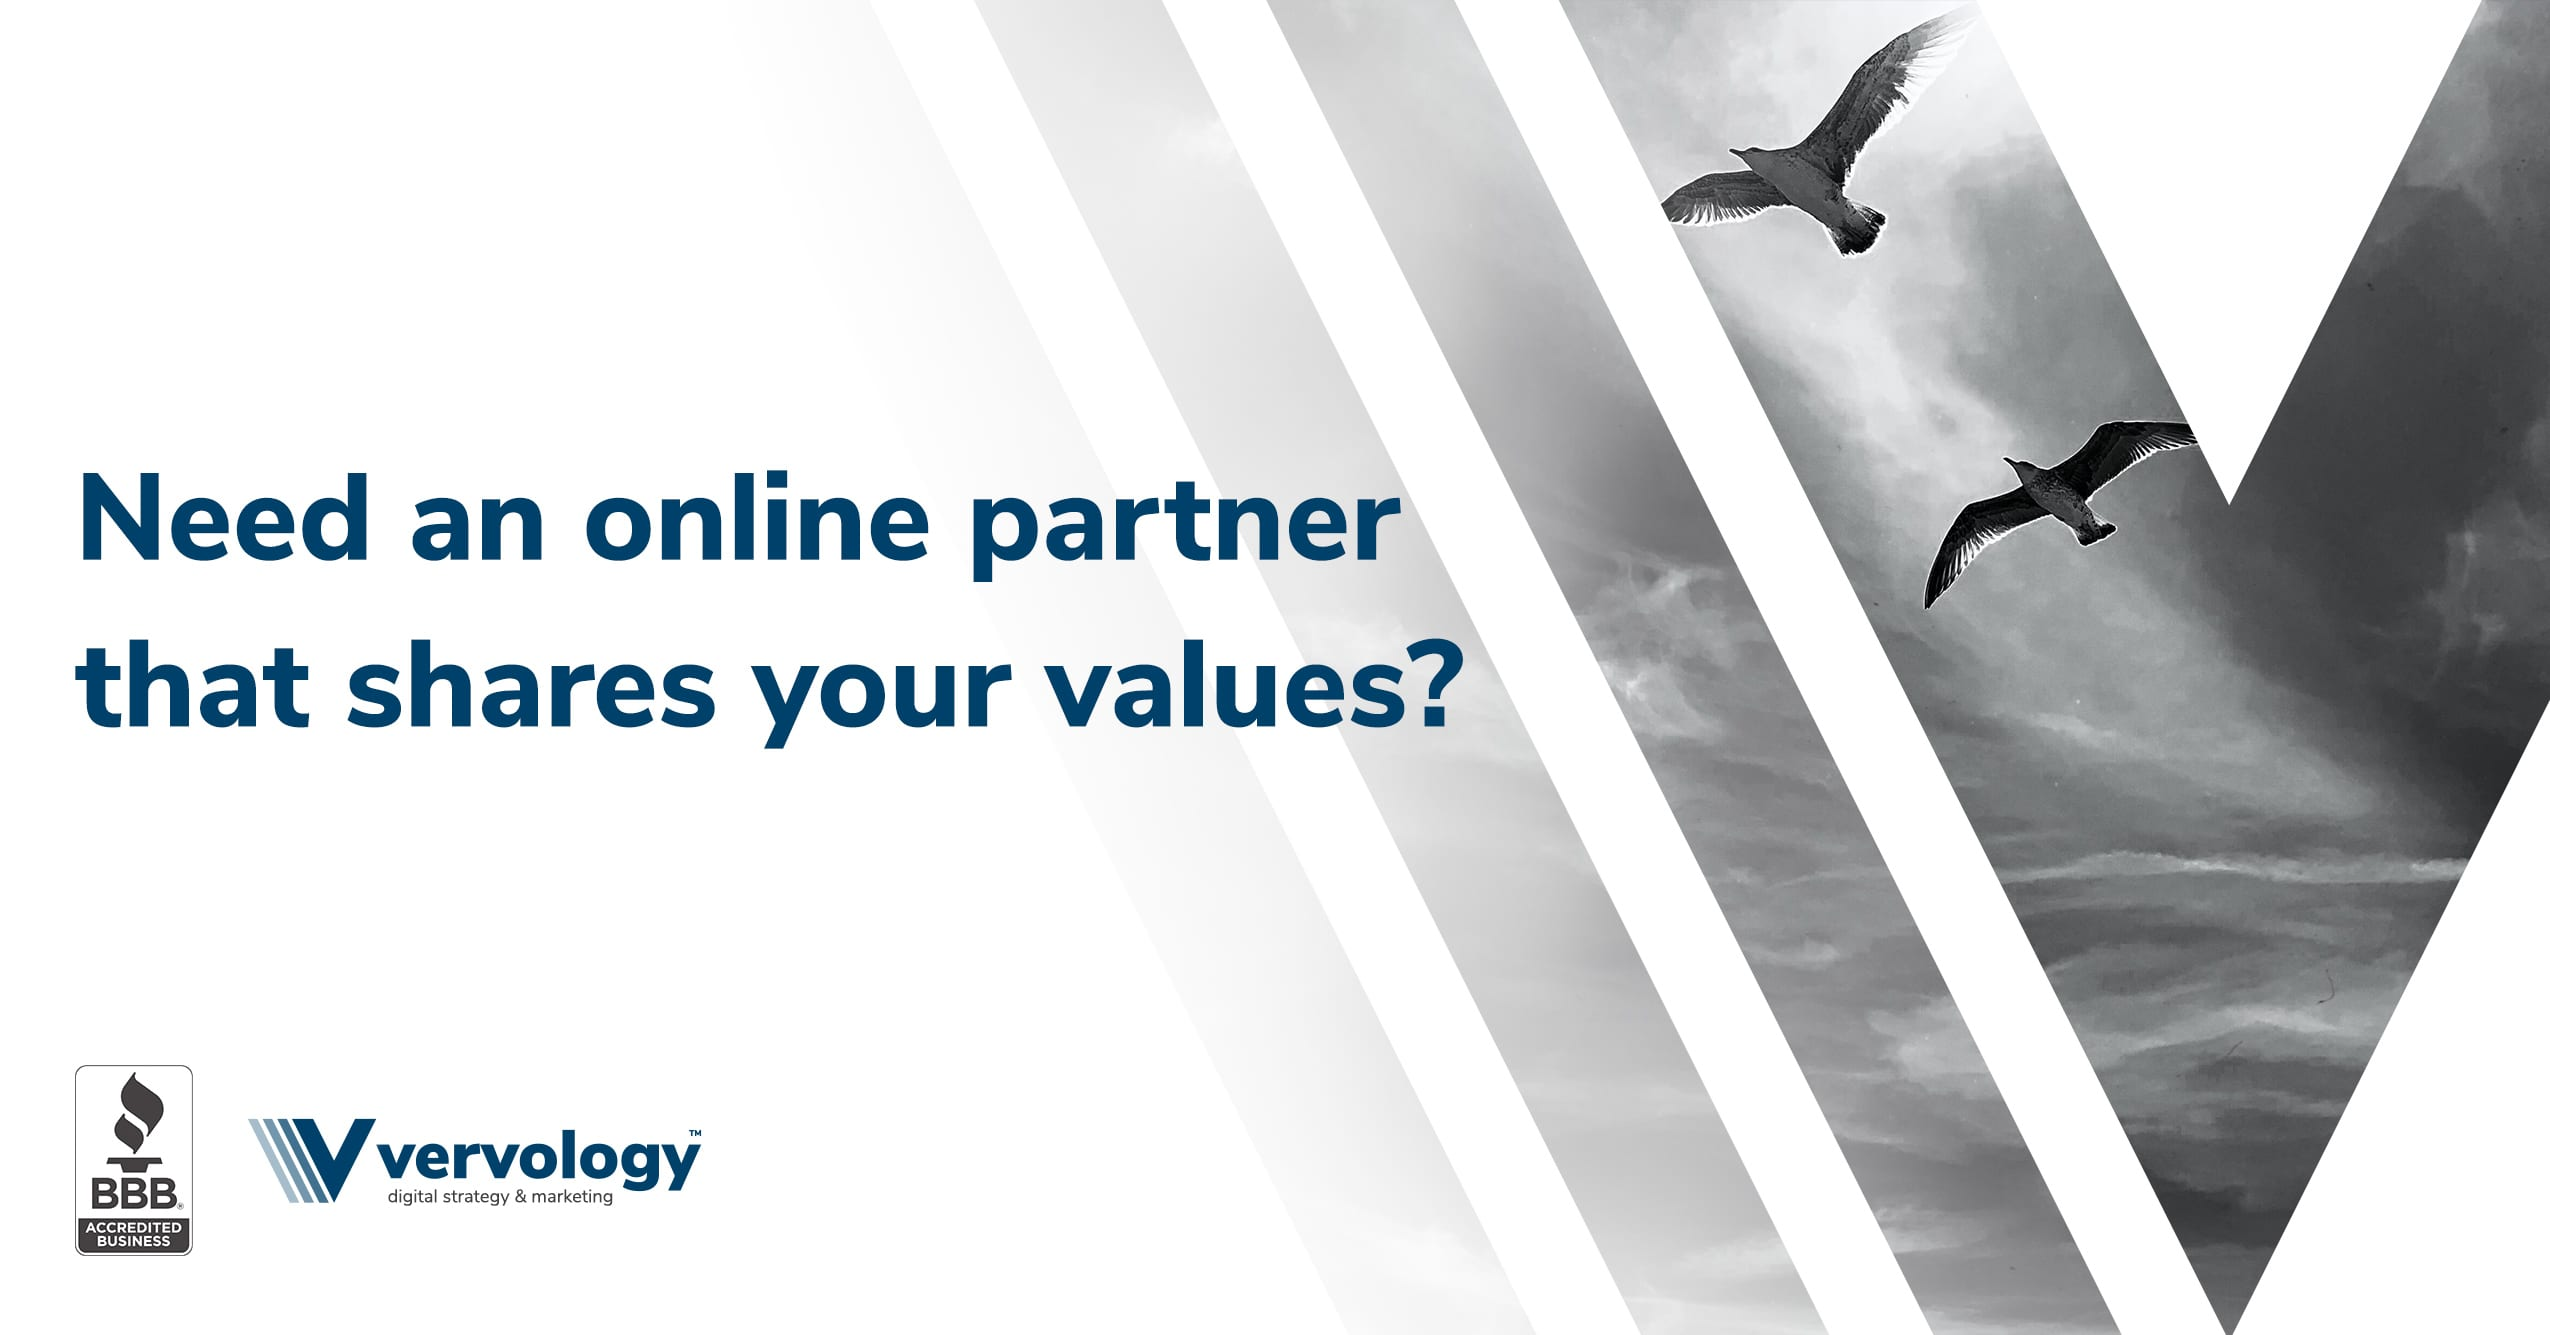 Need an online partner that shares your values?